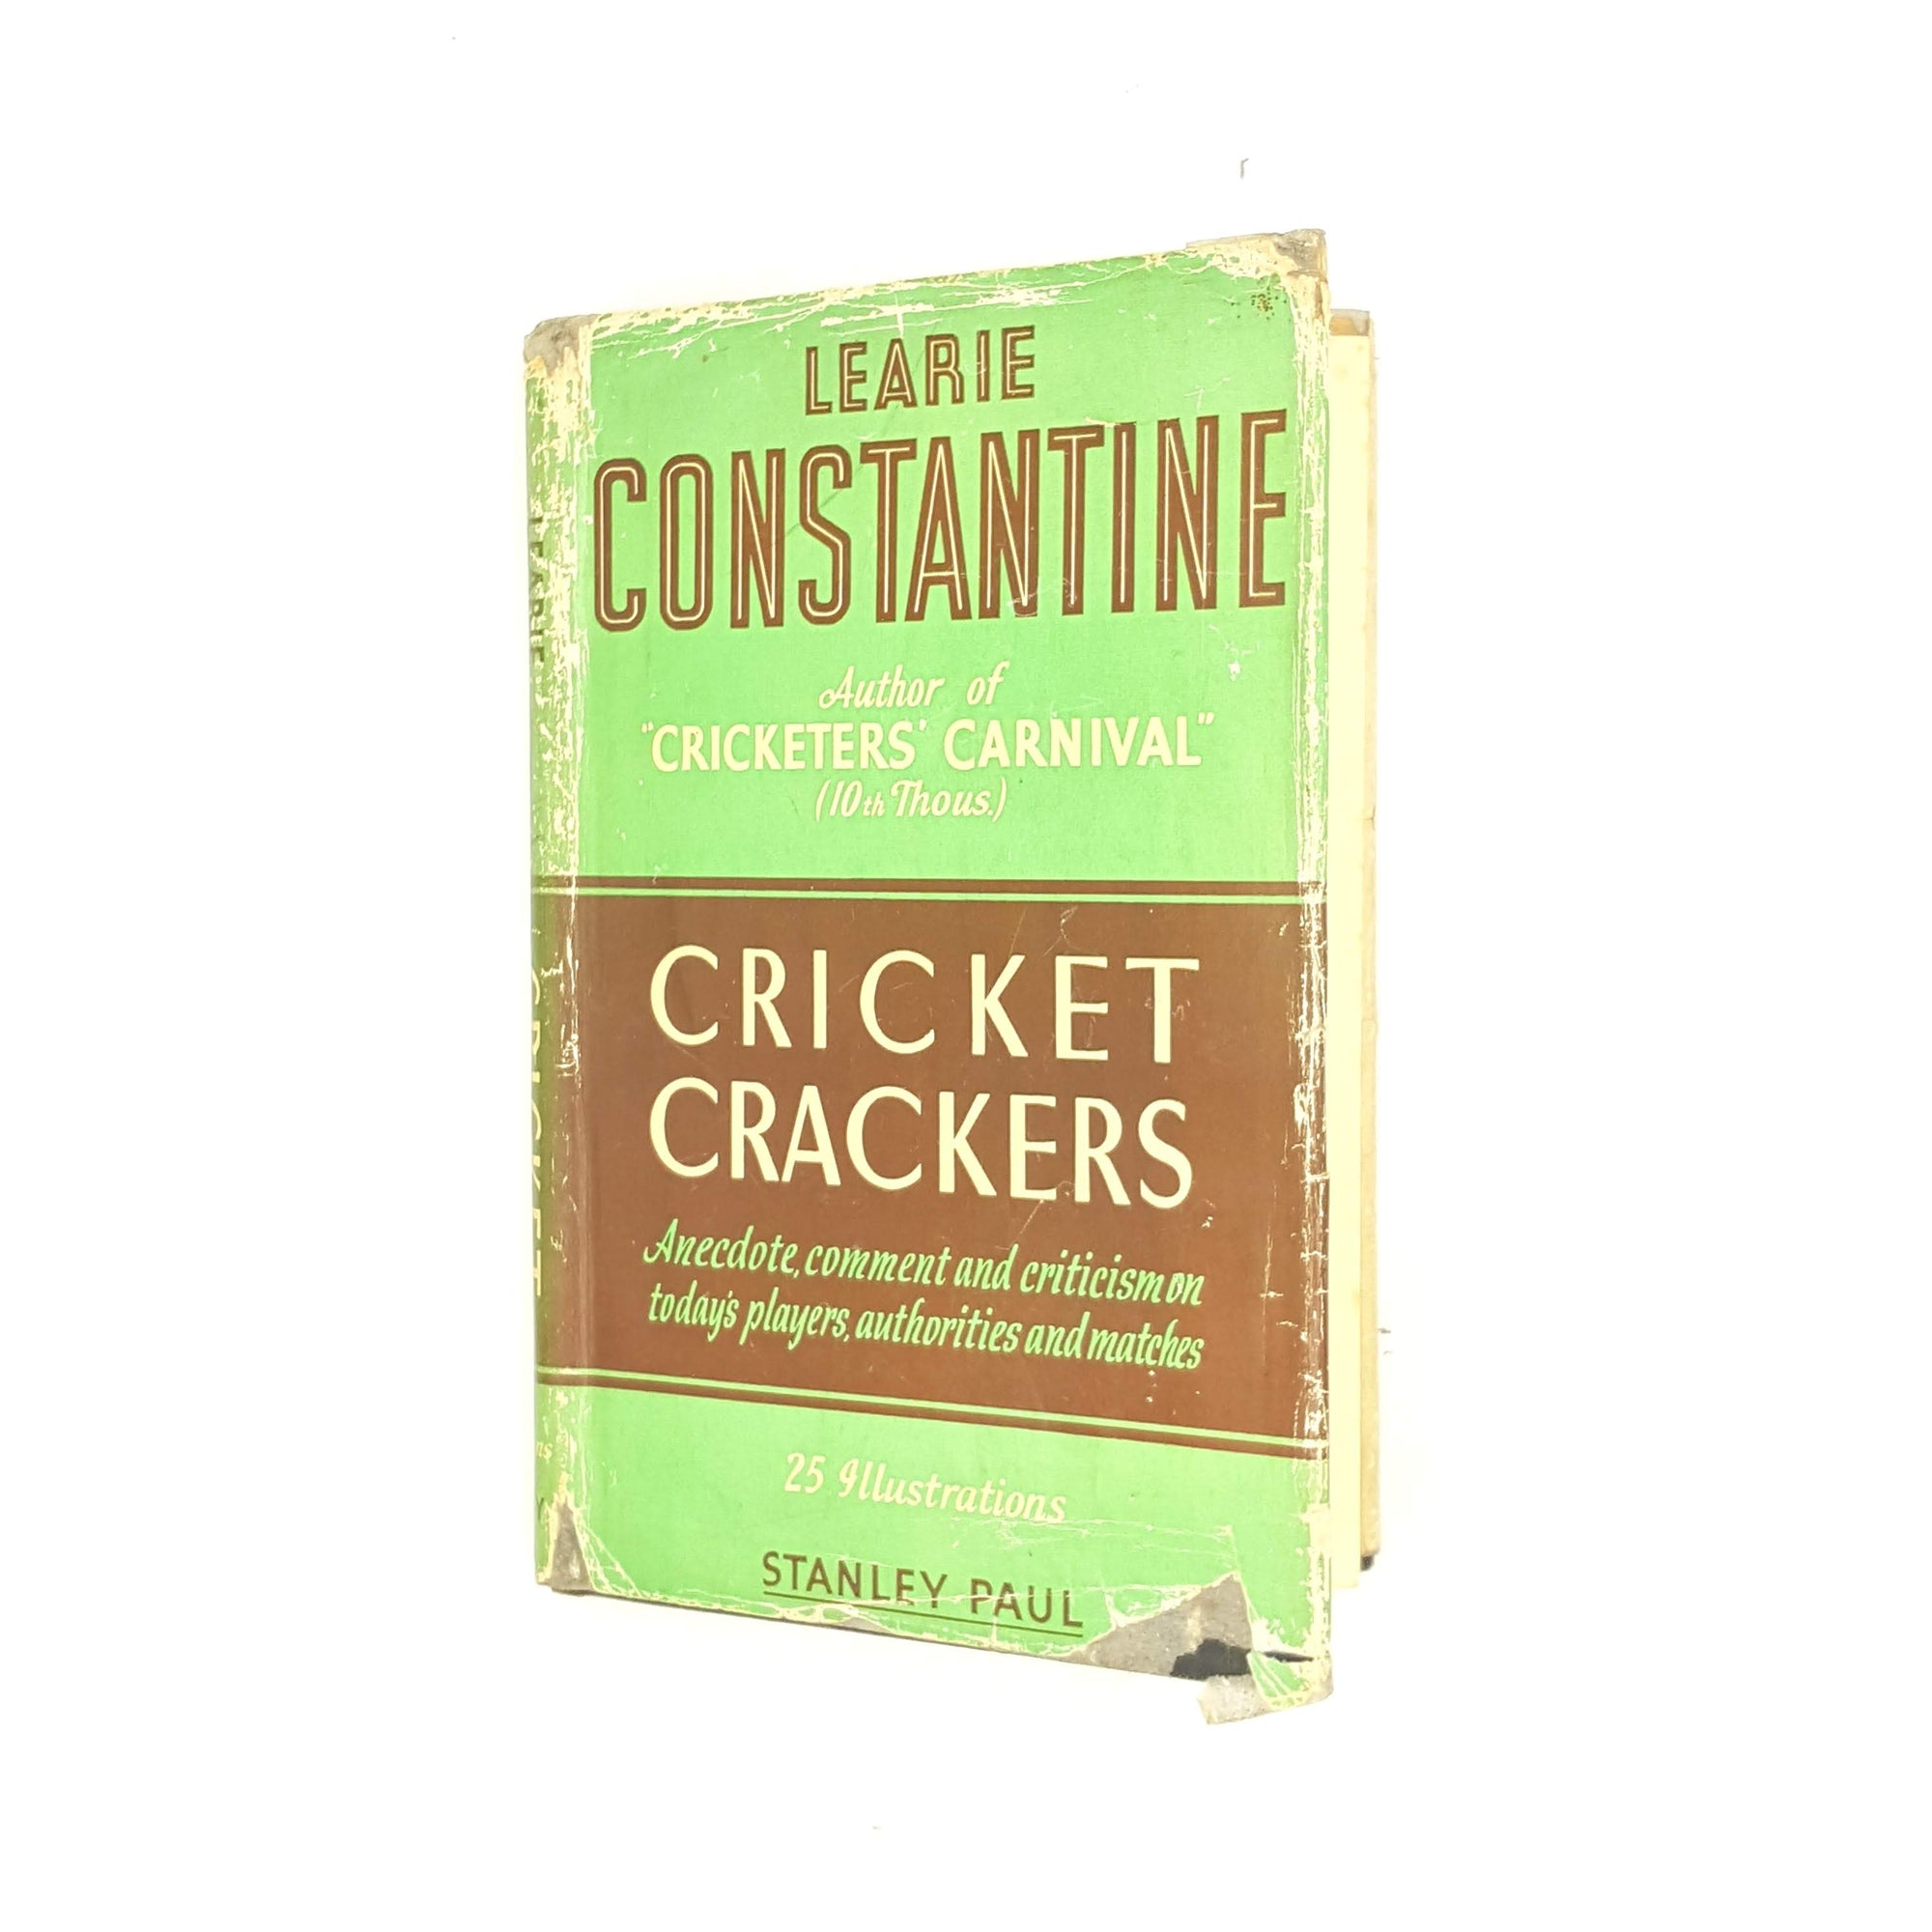 Cricket Crackers by Learie Constantine